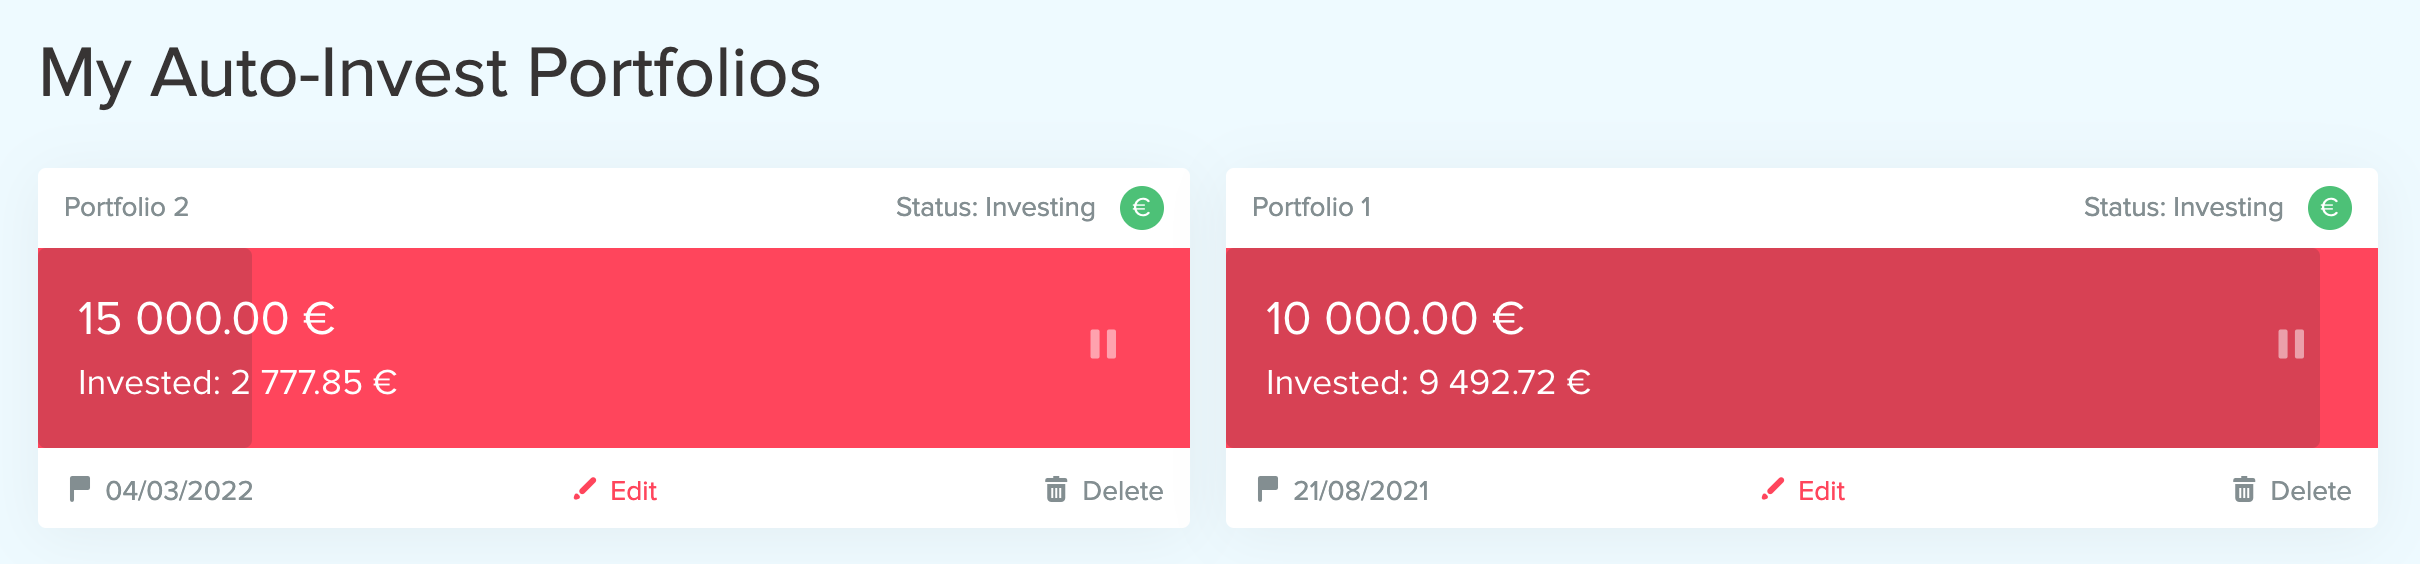 Swaper Review auto-invest